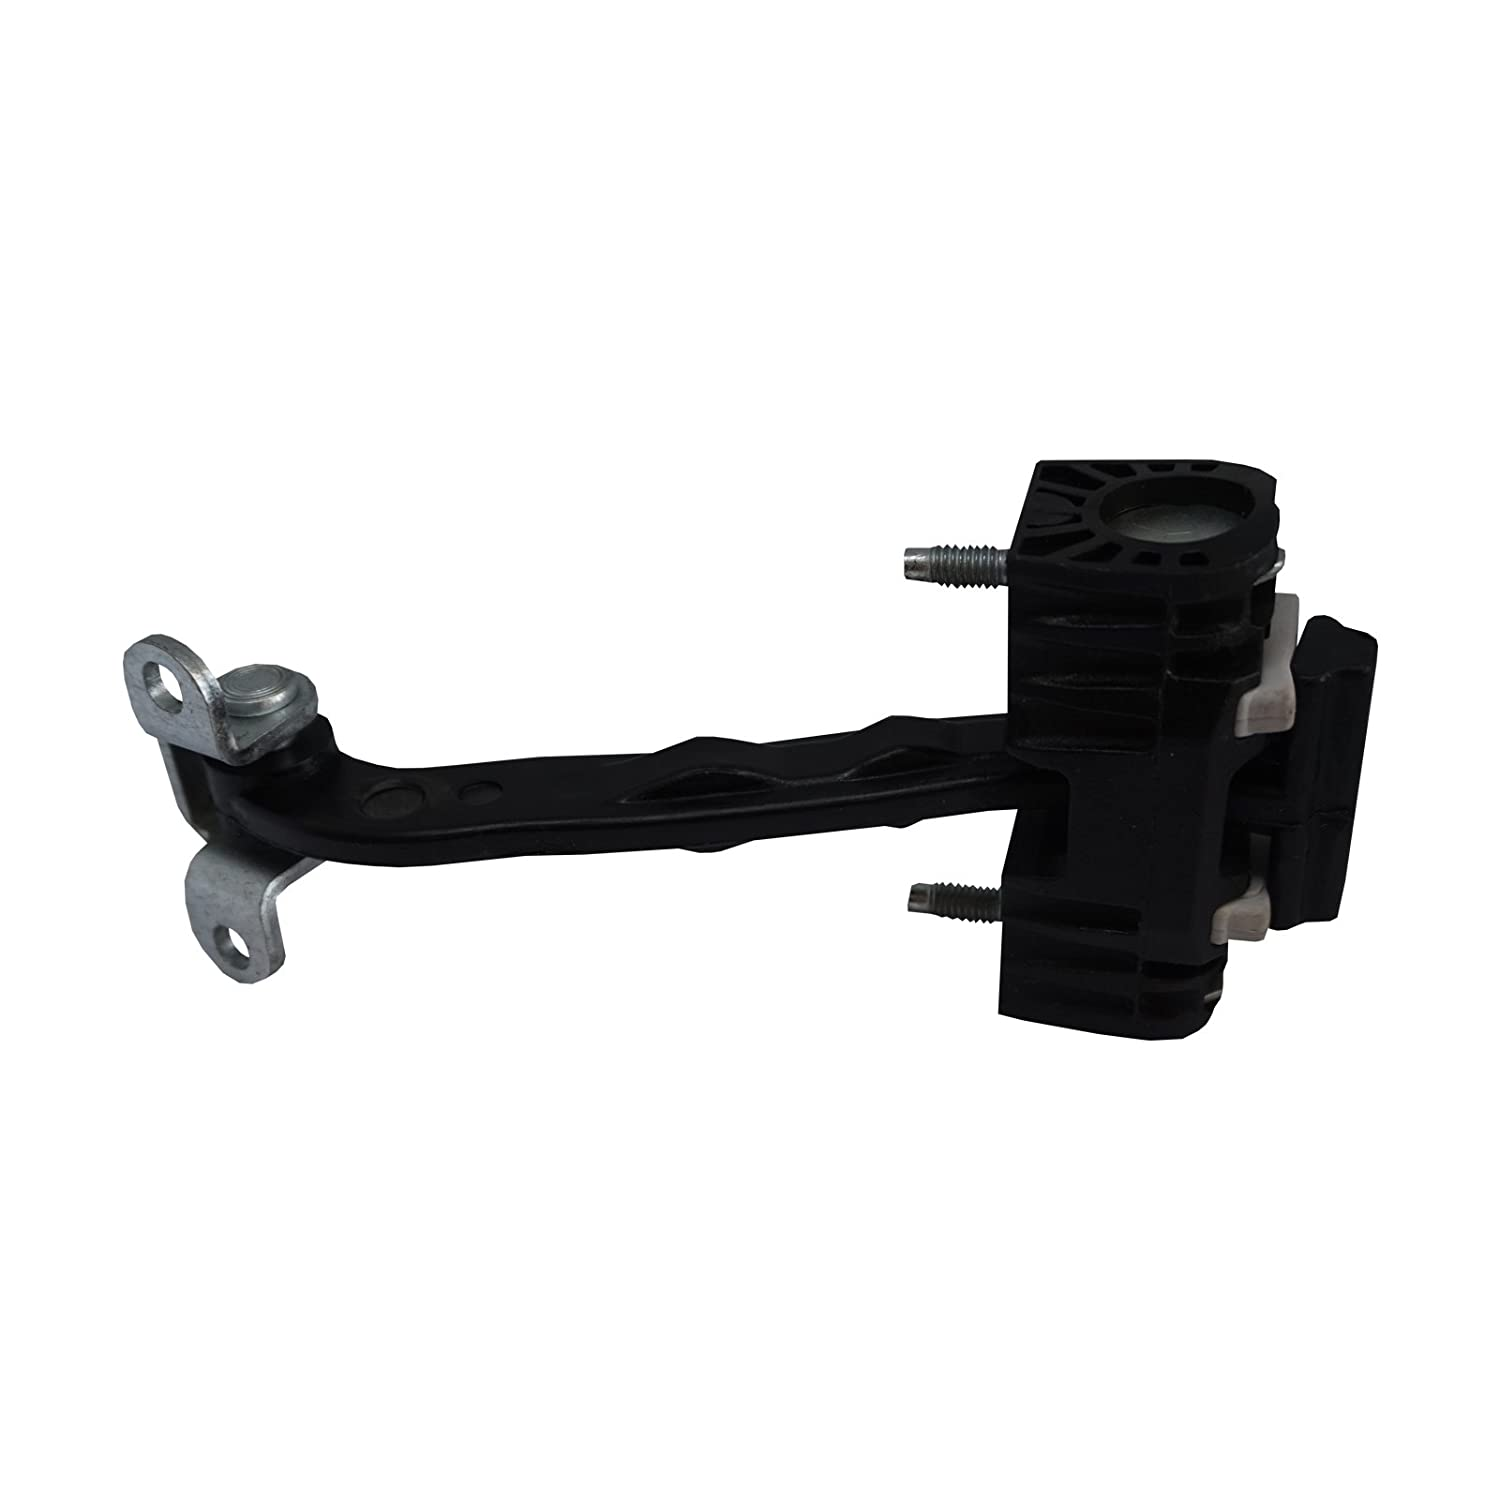 Bross BDP773 Front Door Hinge Stop Check Strap Limitery 9181N9 for Peugeot Boxer Jumper Relay Ducato MK3